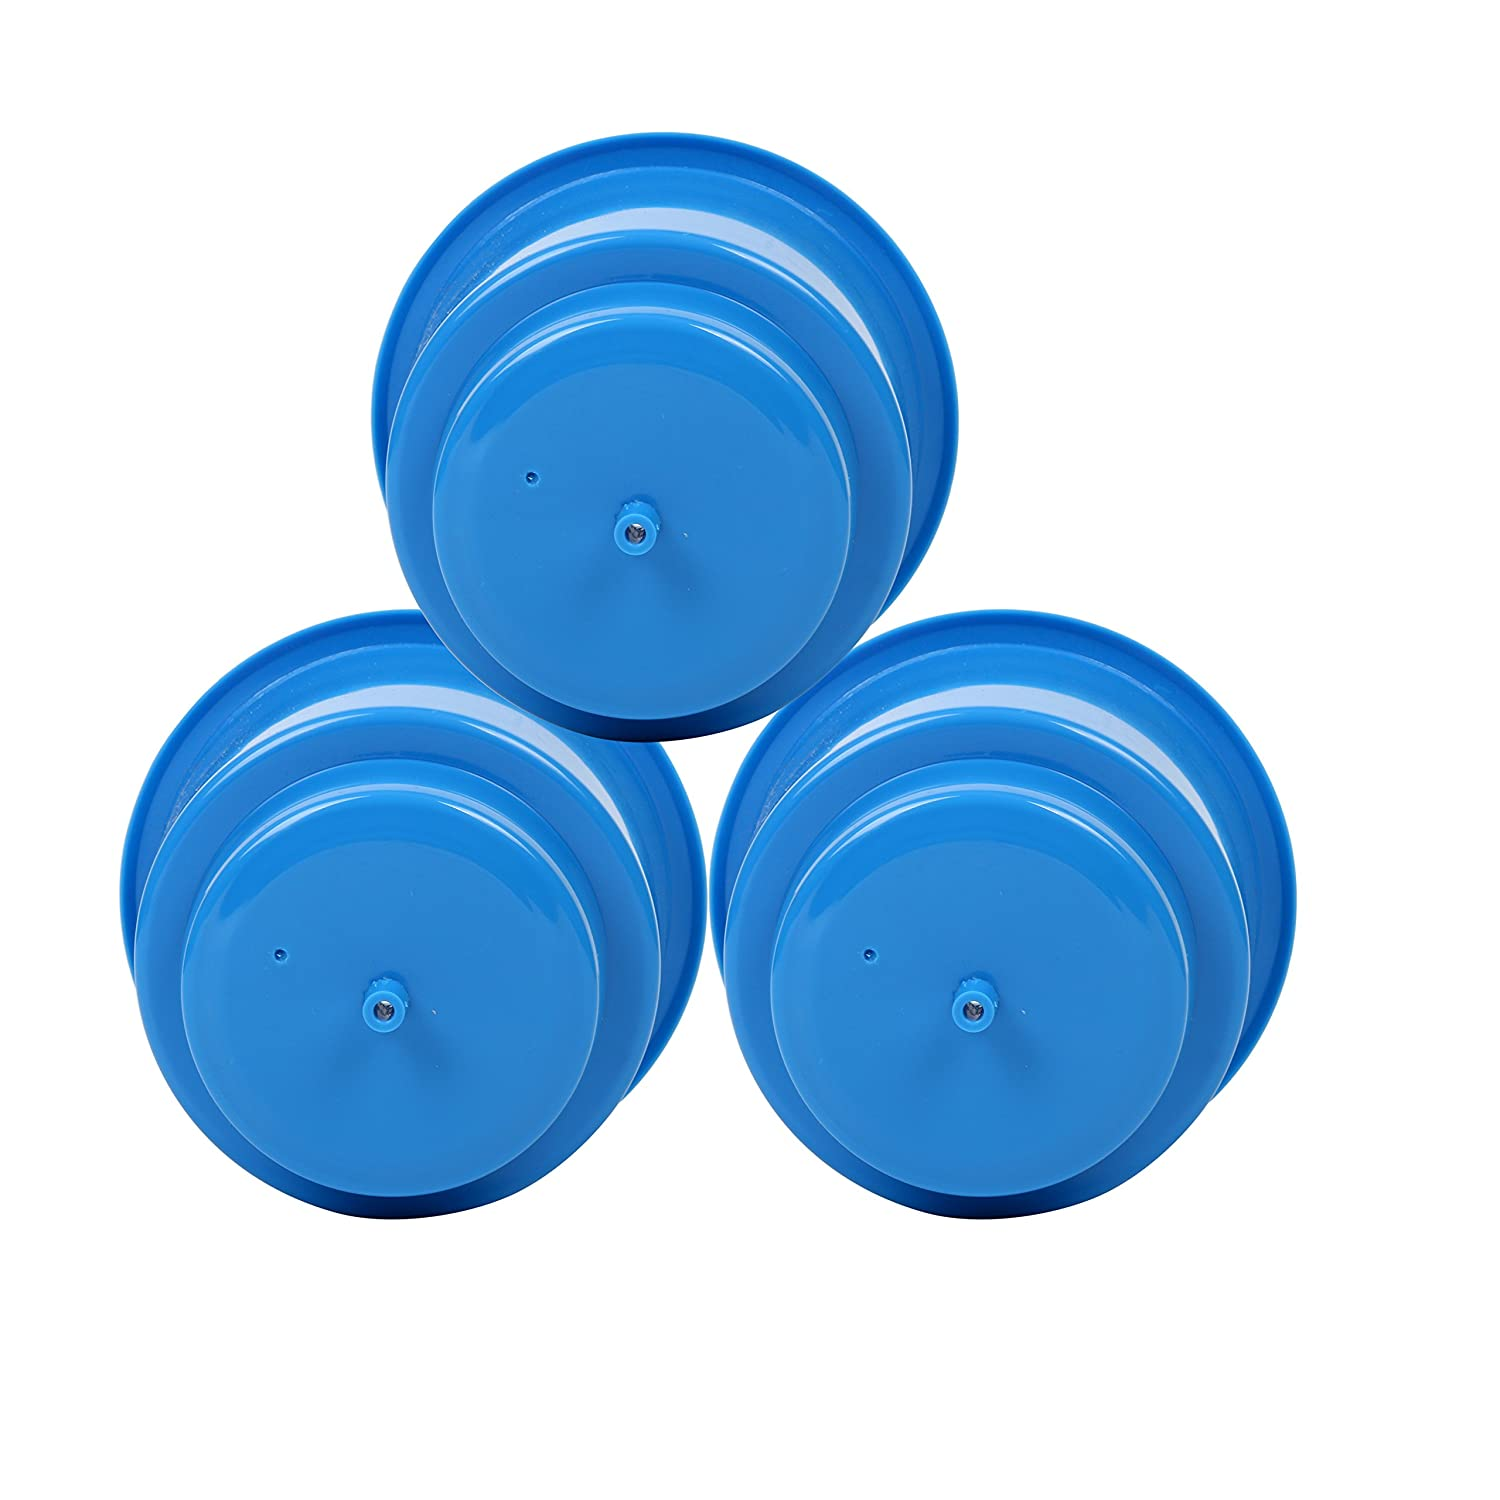 3 PCS, Blue Set of 3 Amarine-made Recessed Plastic Cup Drink Can Holder with Drain for Boat Car Marine Rv